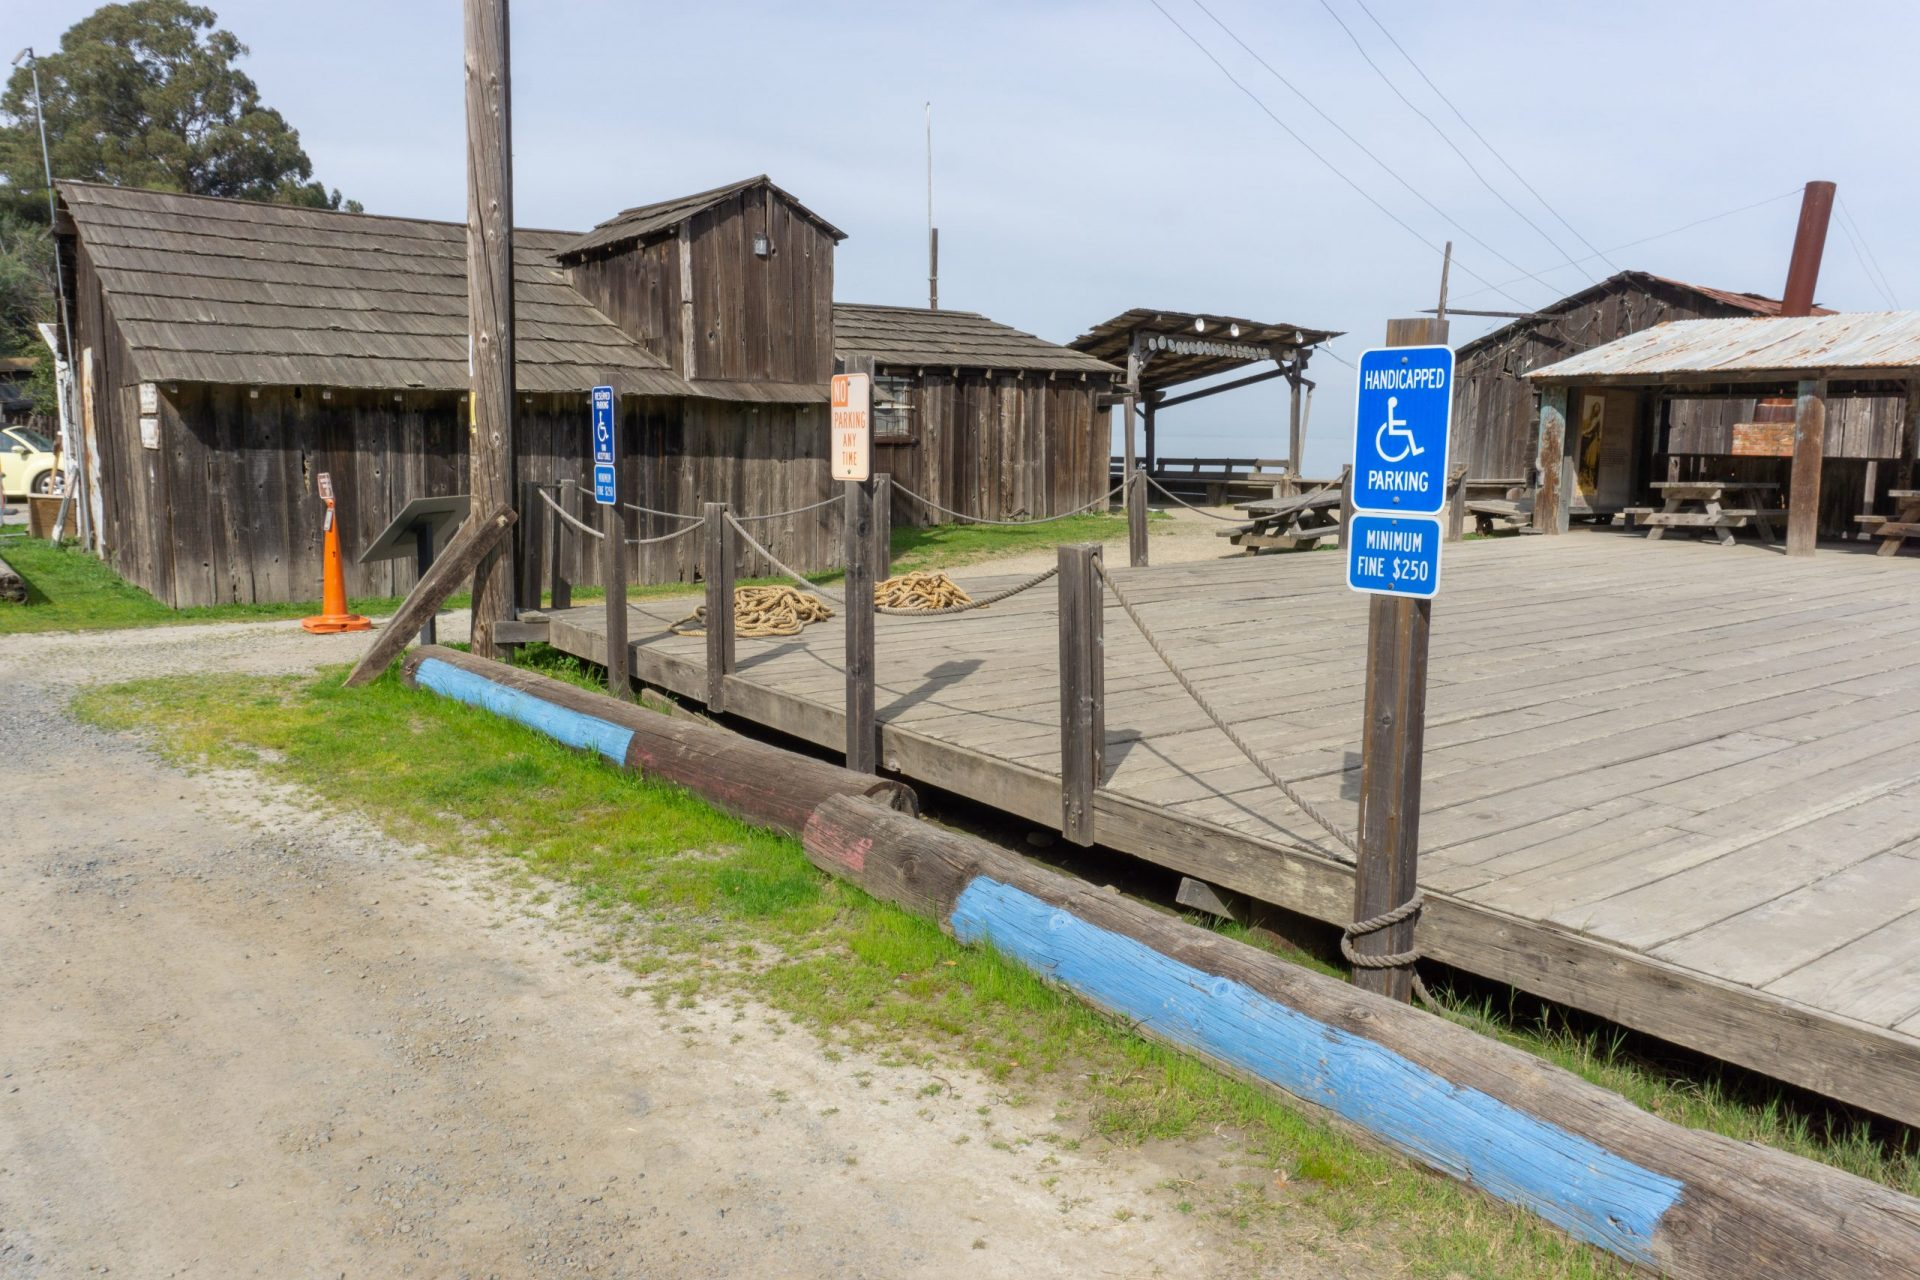 handicap parking space and wooden buildings